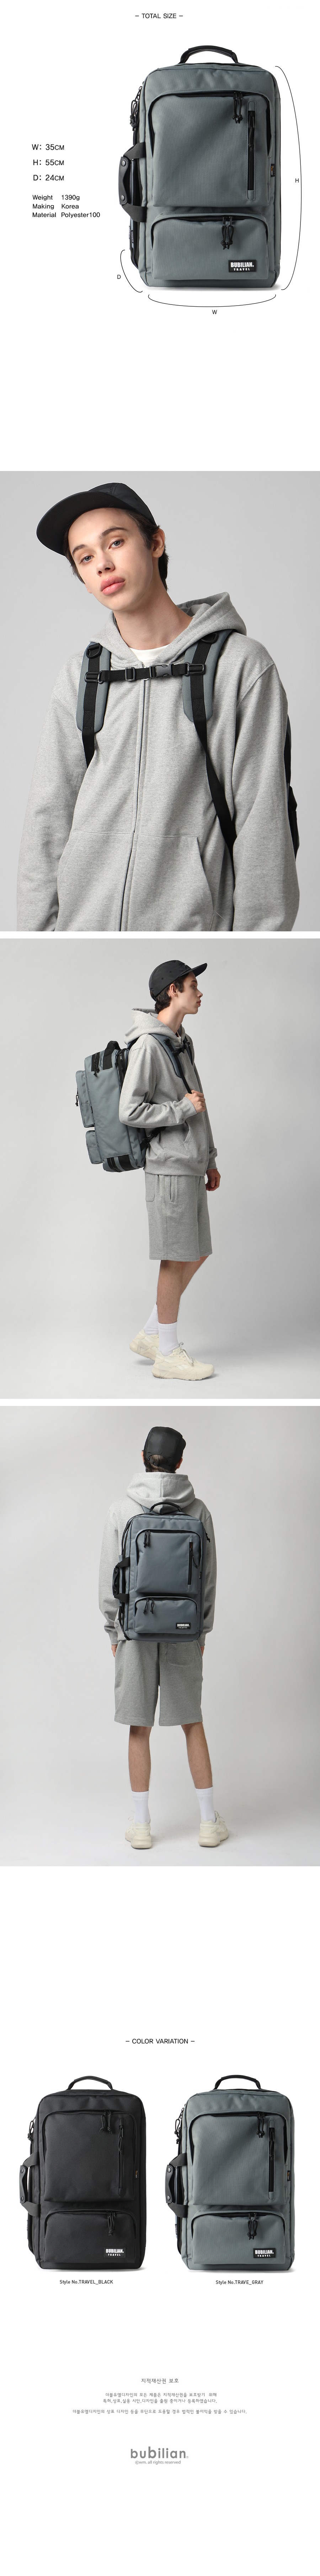 Bubilian 여행가방 Travel Backpack _ [GRAY]